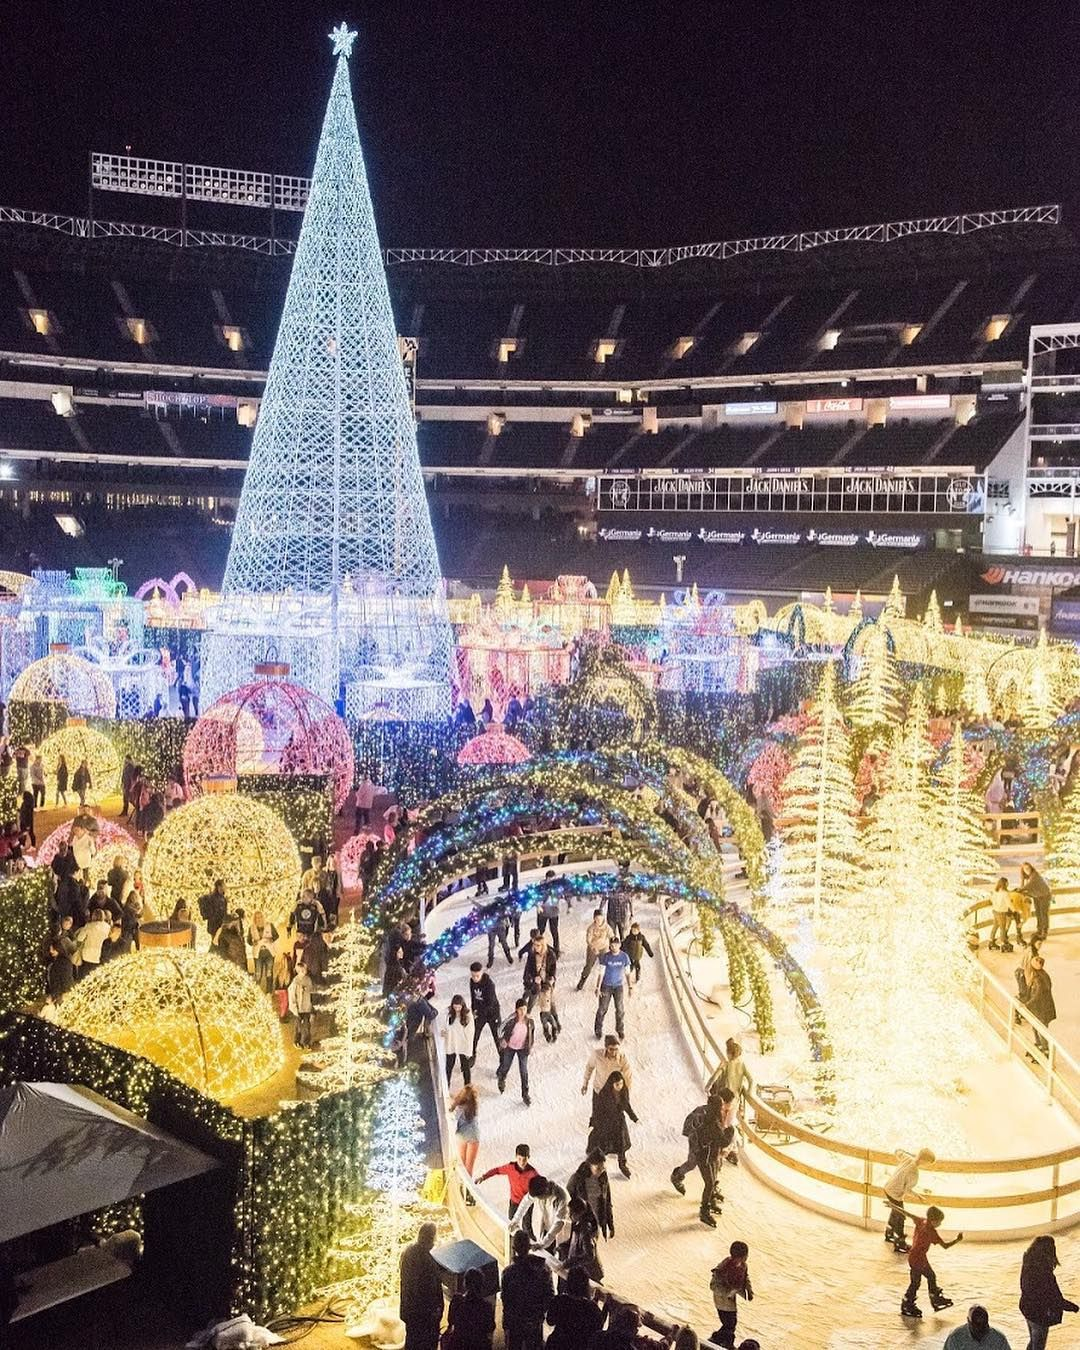 Enchant Christmas.The World S Biggest Christmas Light Maze Is Coming Soon And